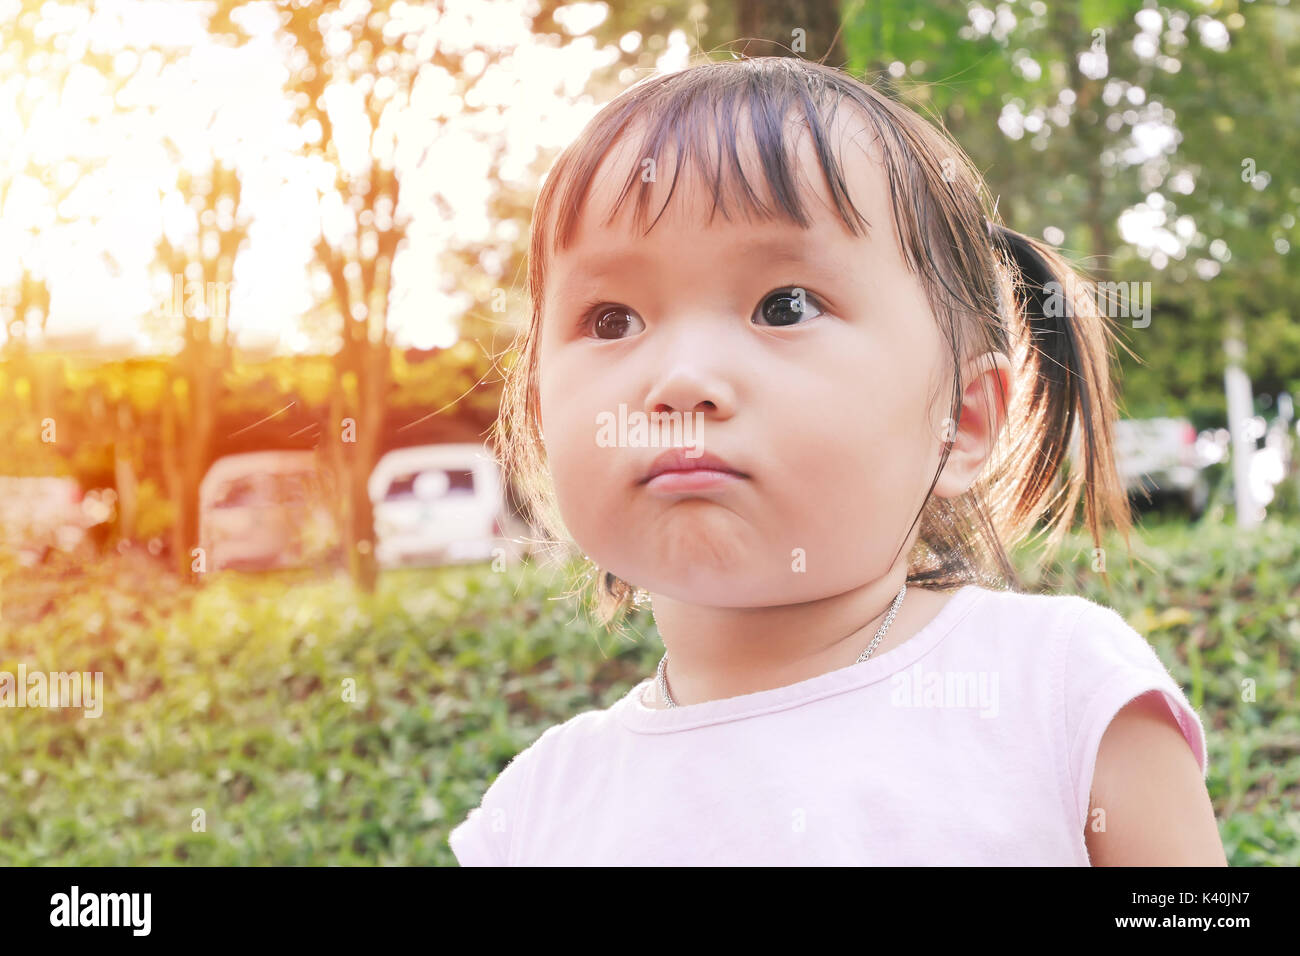 portrait of little girl scowling face playing in the green garden with warm tone and soft focus ,asian baby - Stock Image